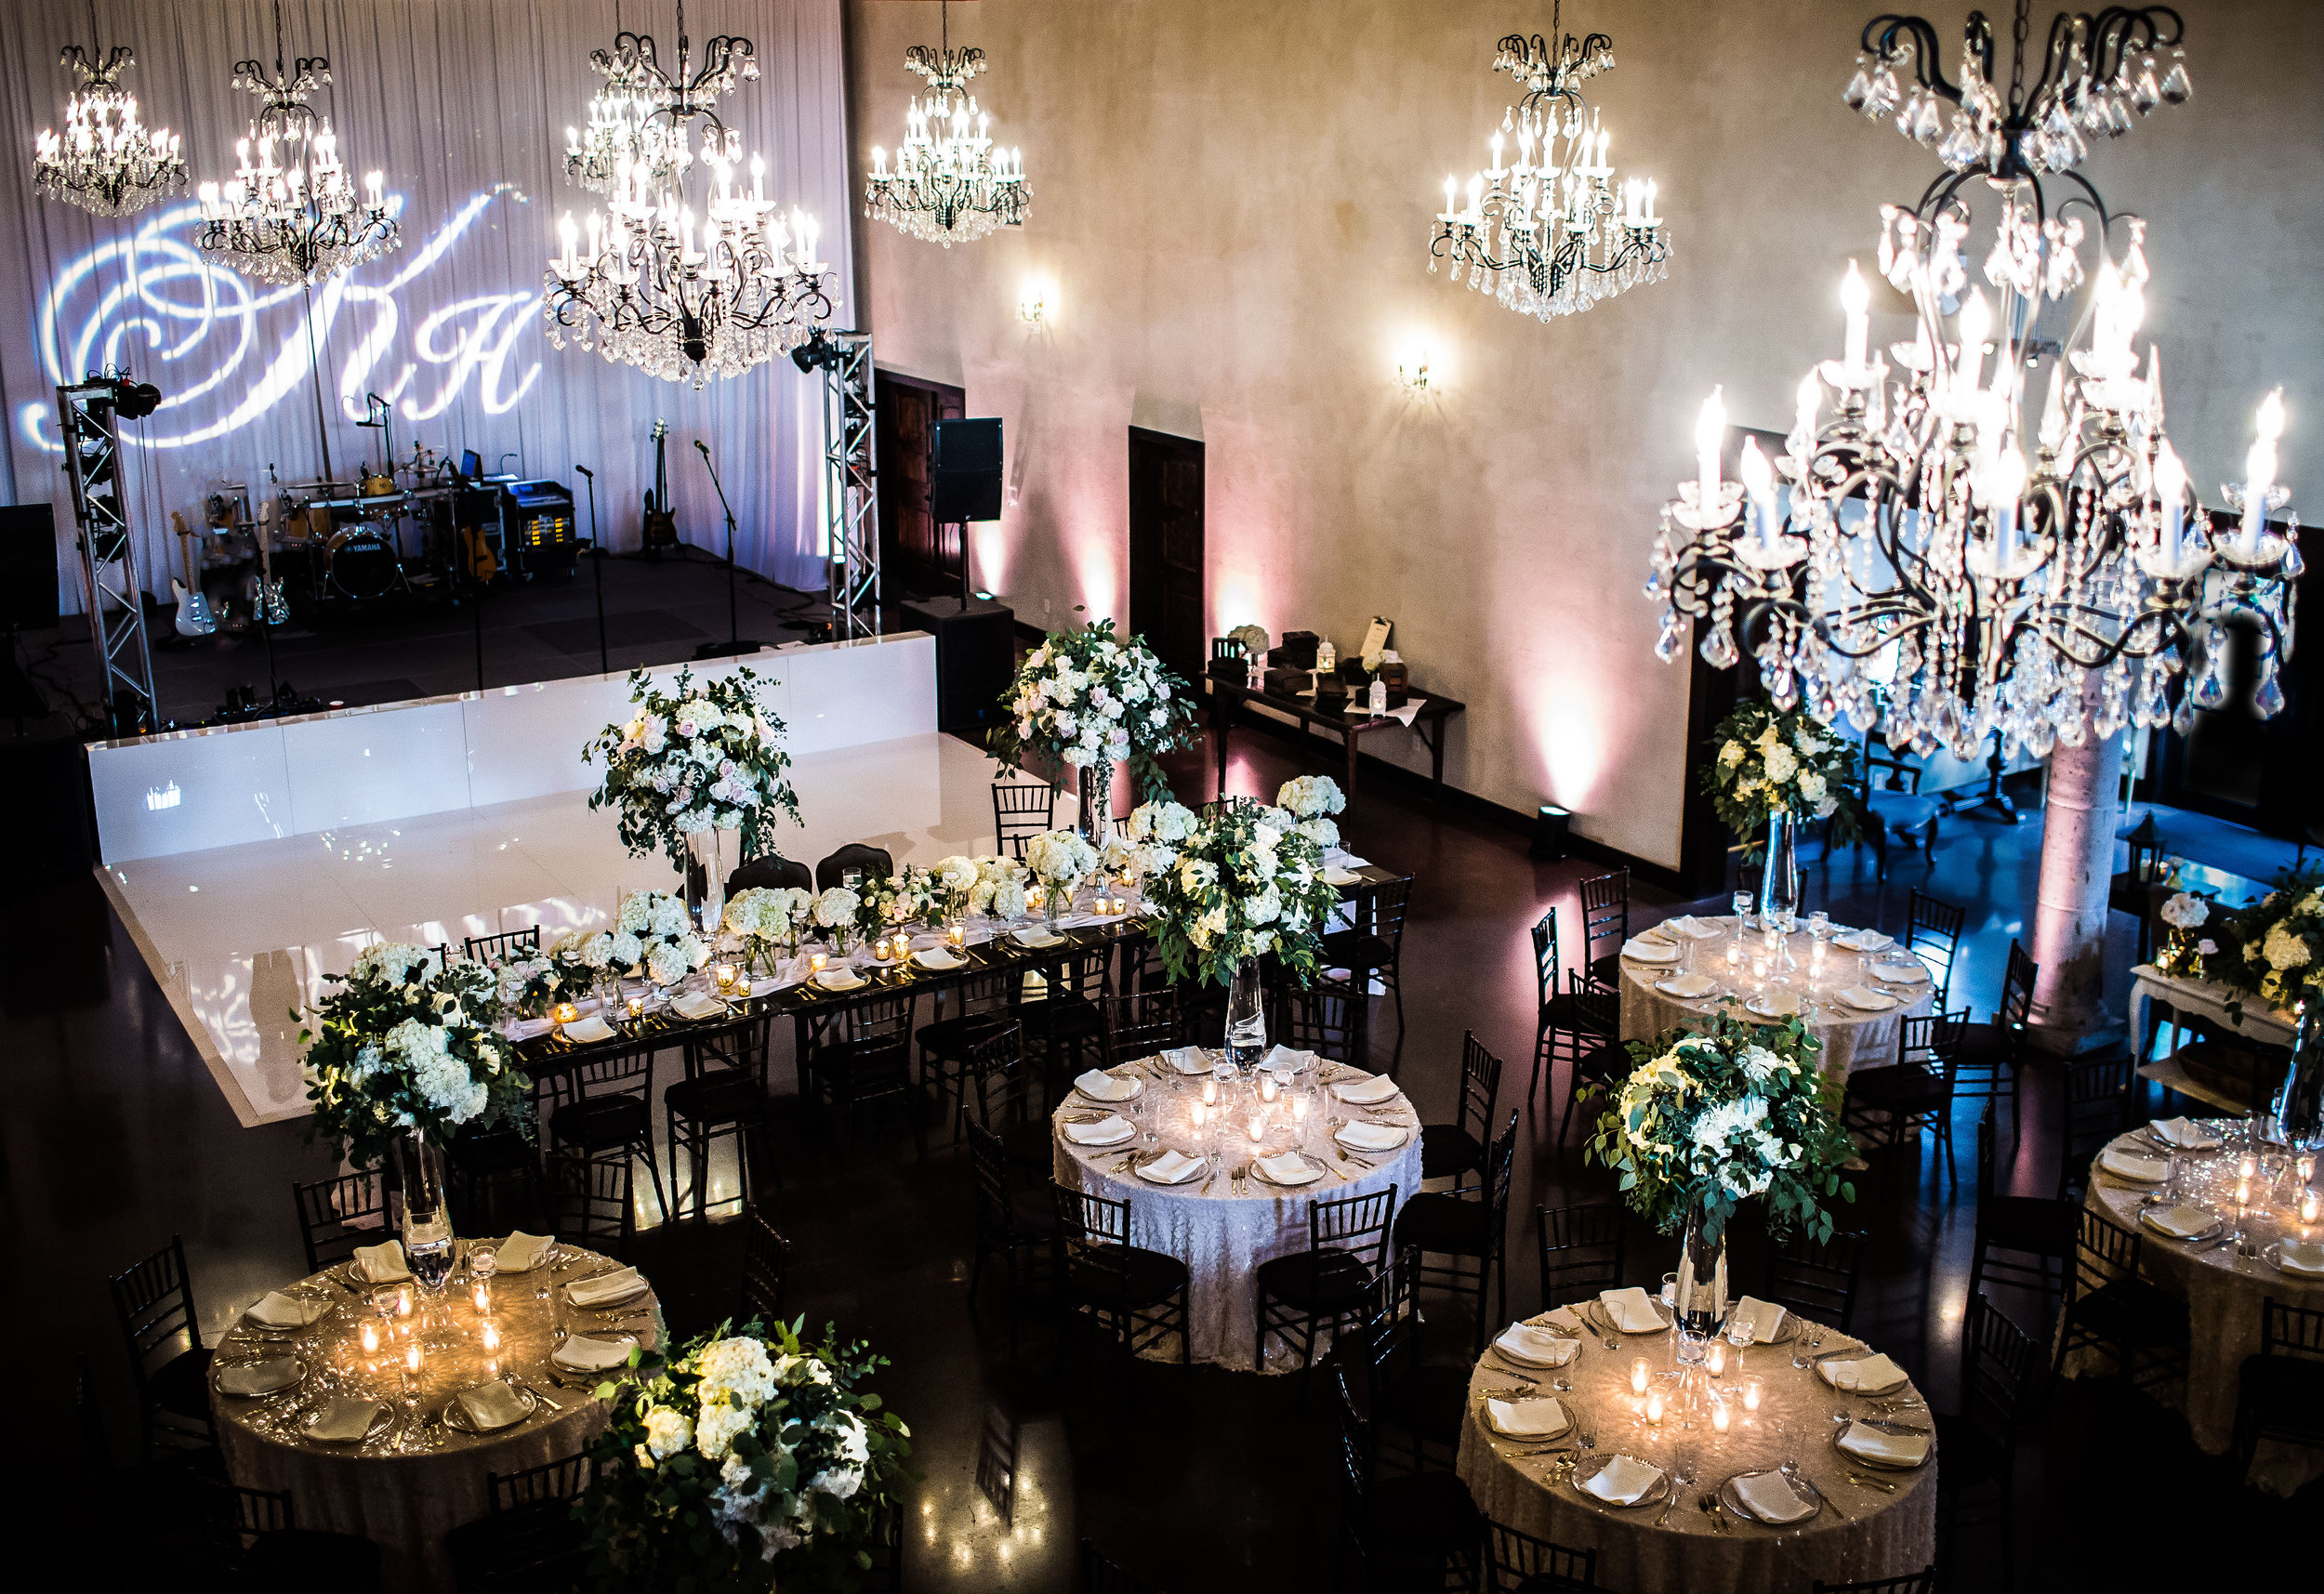 Photo: The Bird and The Bear // Venue: Ma Maison // Florals: STEMS Floral Design    SMP said no to THIS!!! And I understand why, but for the every day Joe Schmo, what more could they want?